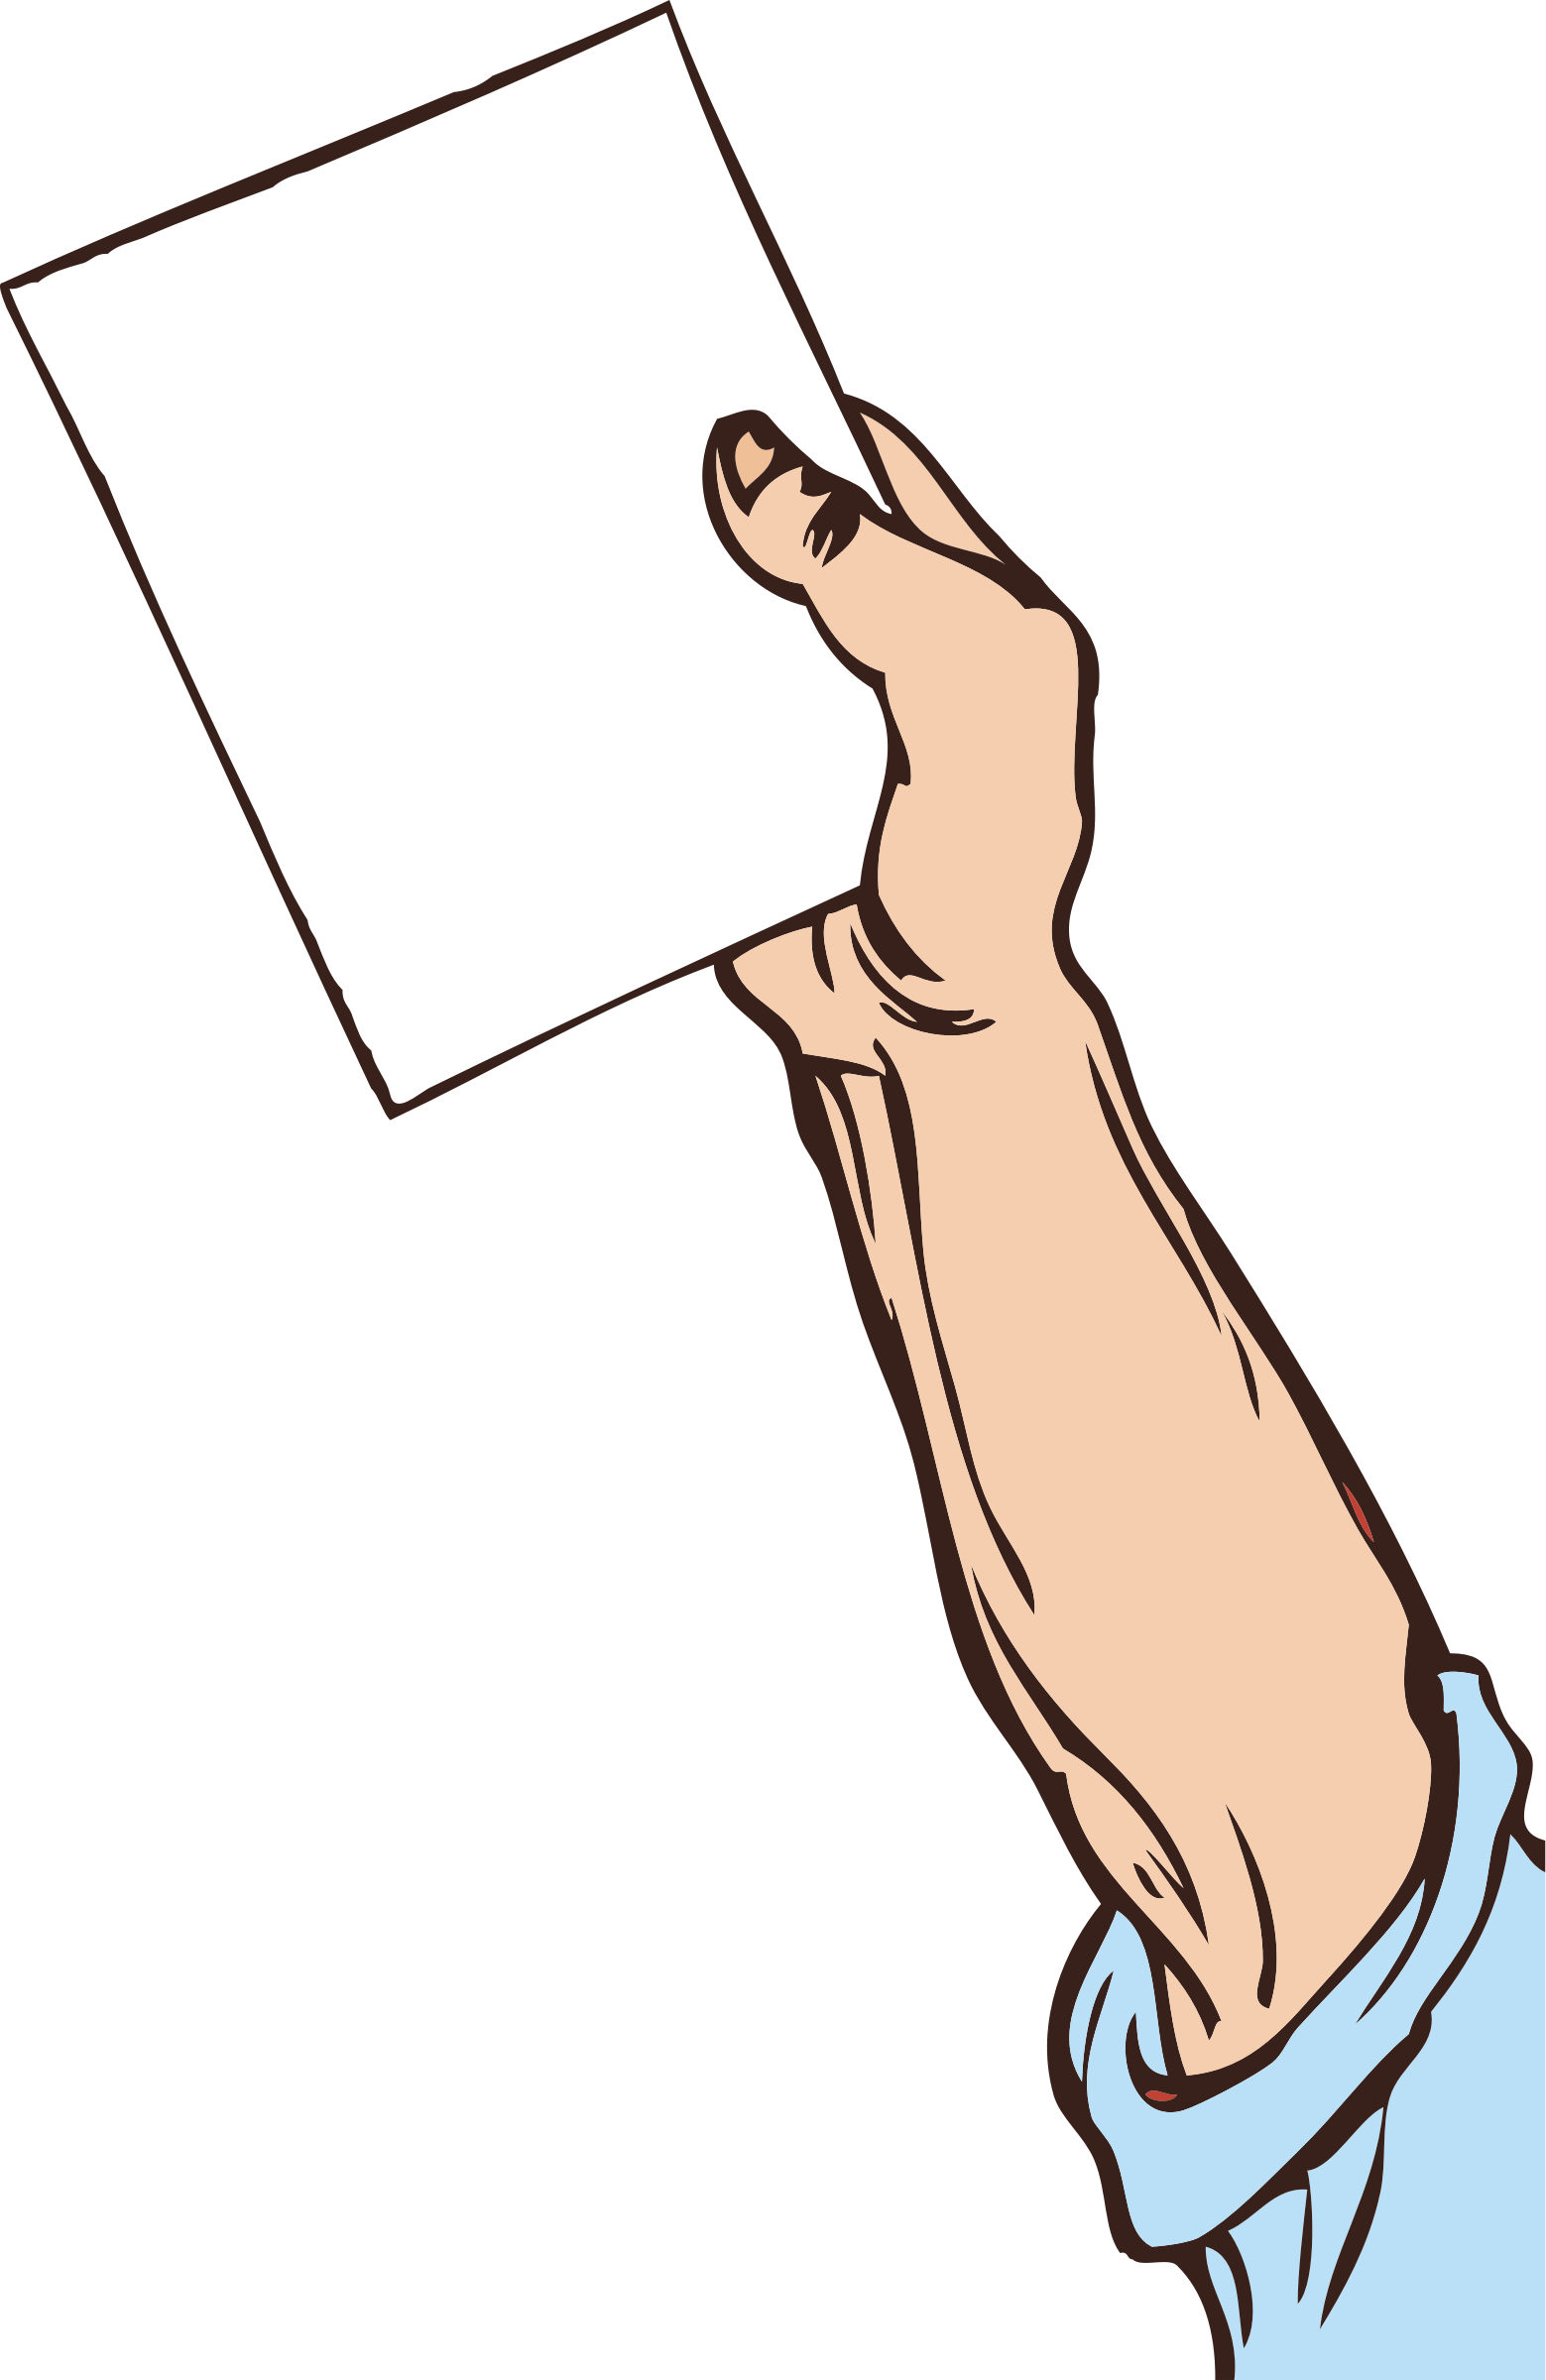 Clipart hand arm. Holding paper big image